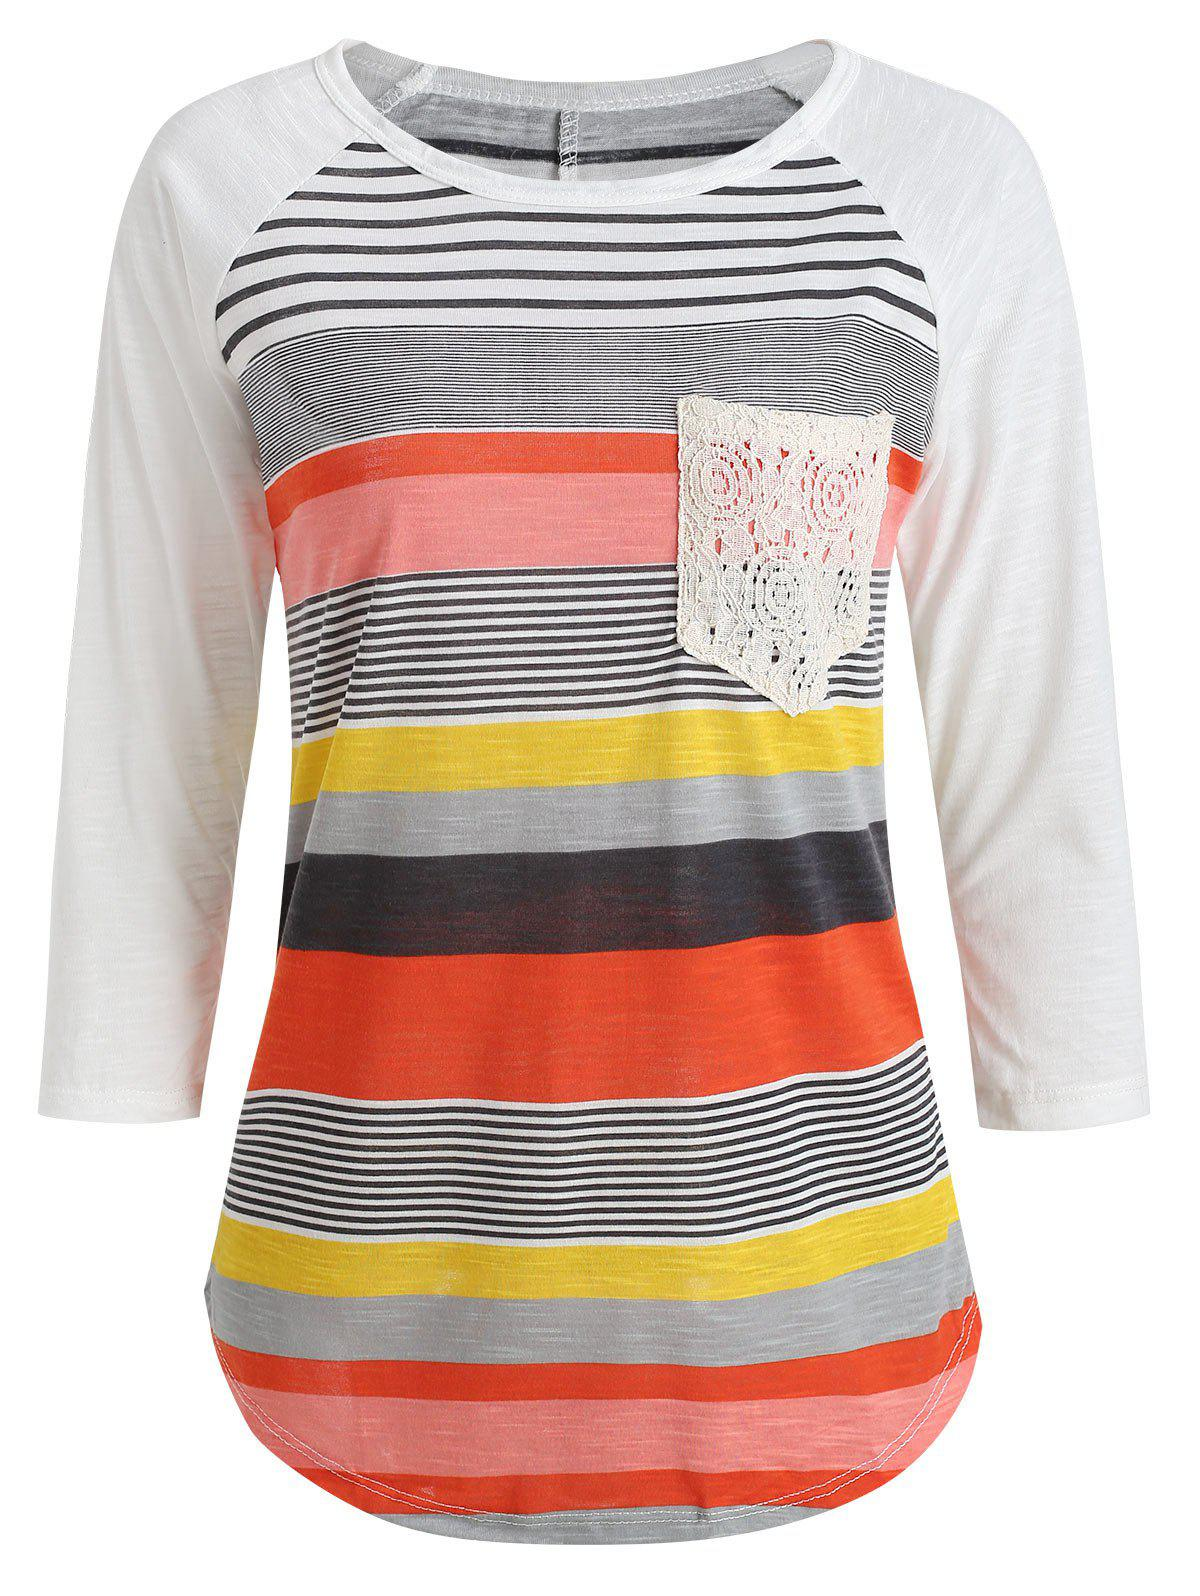 Casual Striped Lace Spliced 3/4 Sleeve Irregular T-Shirt For Women - RED M